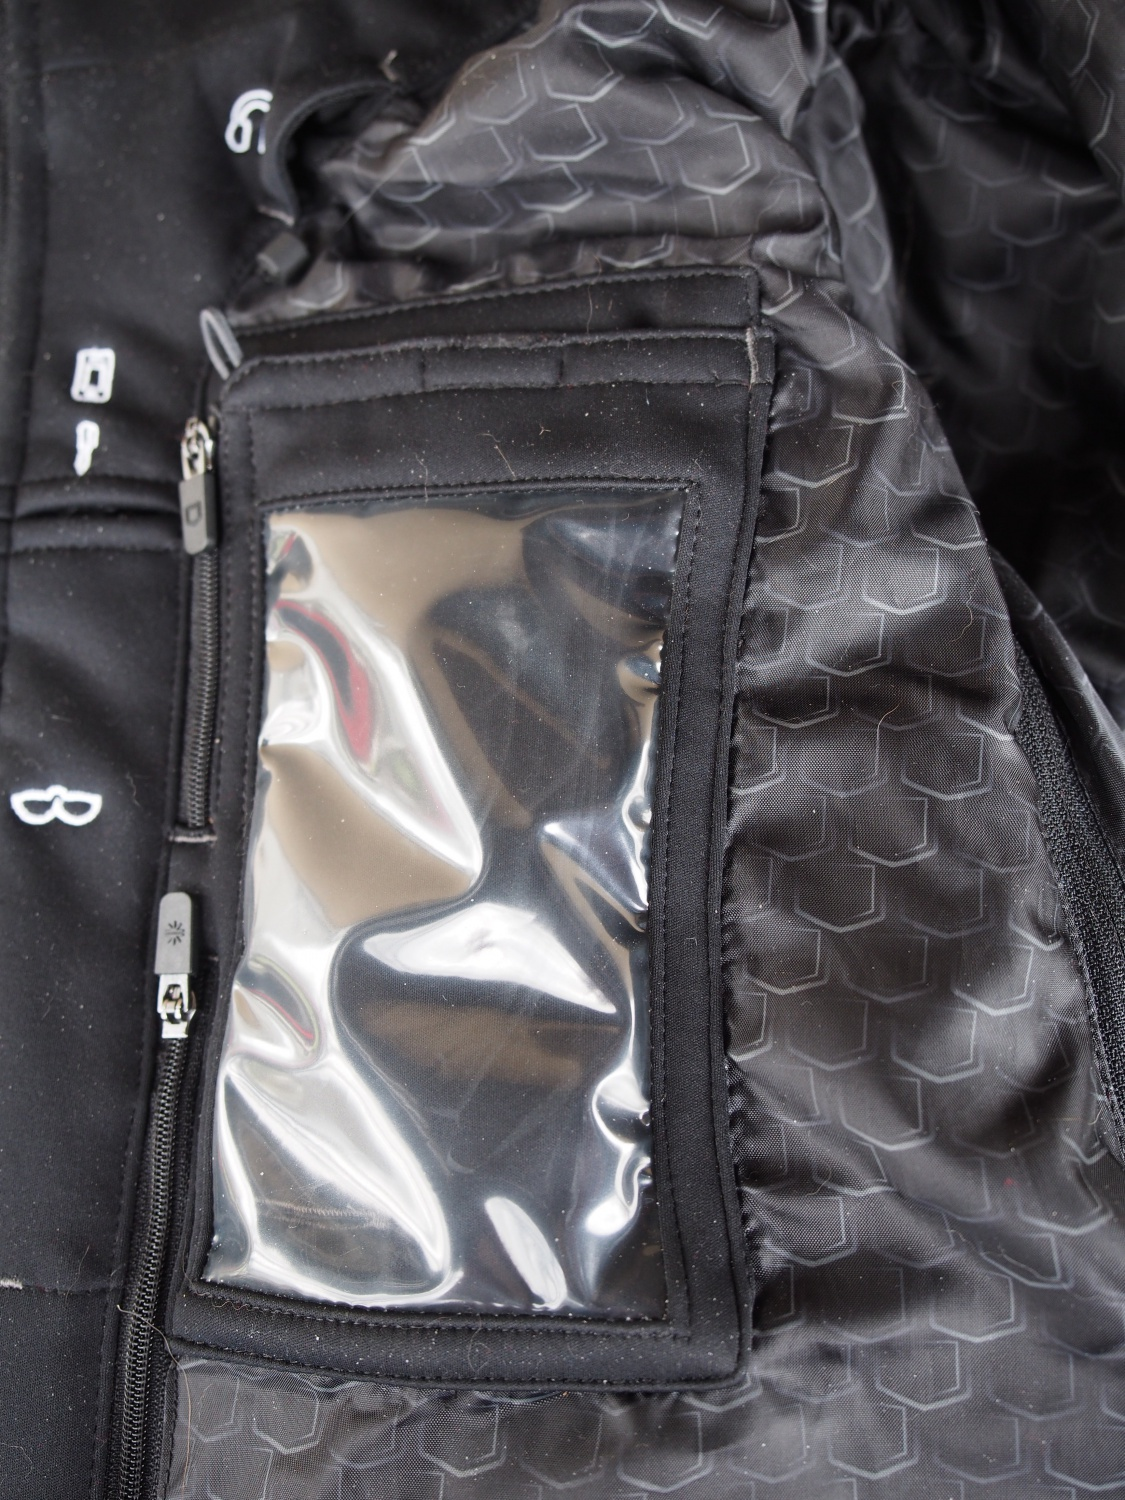 Right side pocket for cell phone or IPad. Next to it is the sunglass pocket and an opening to run ear buds.